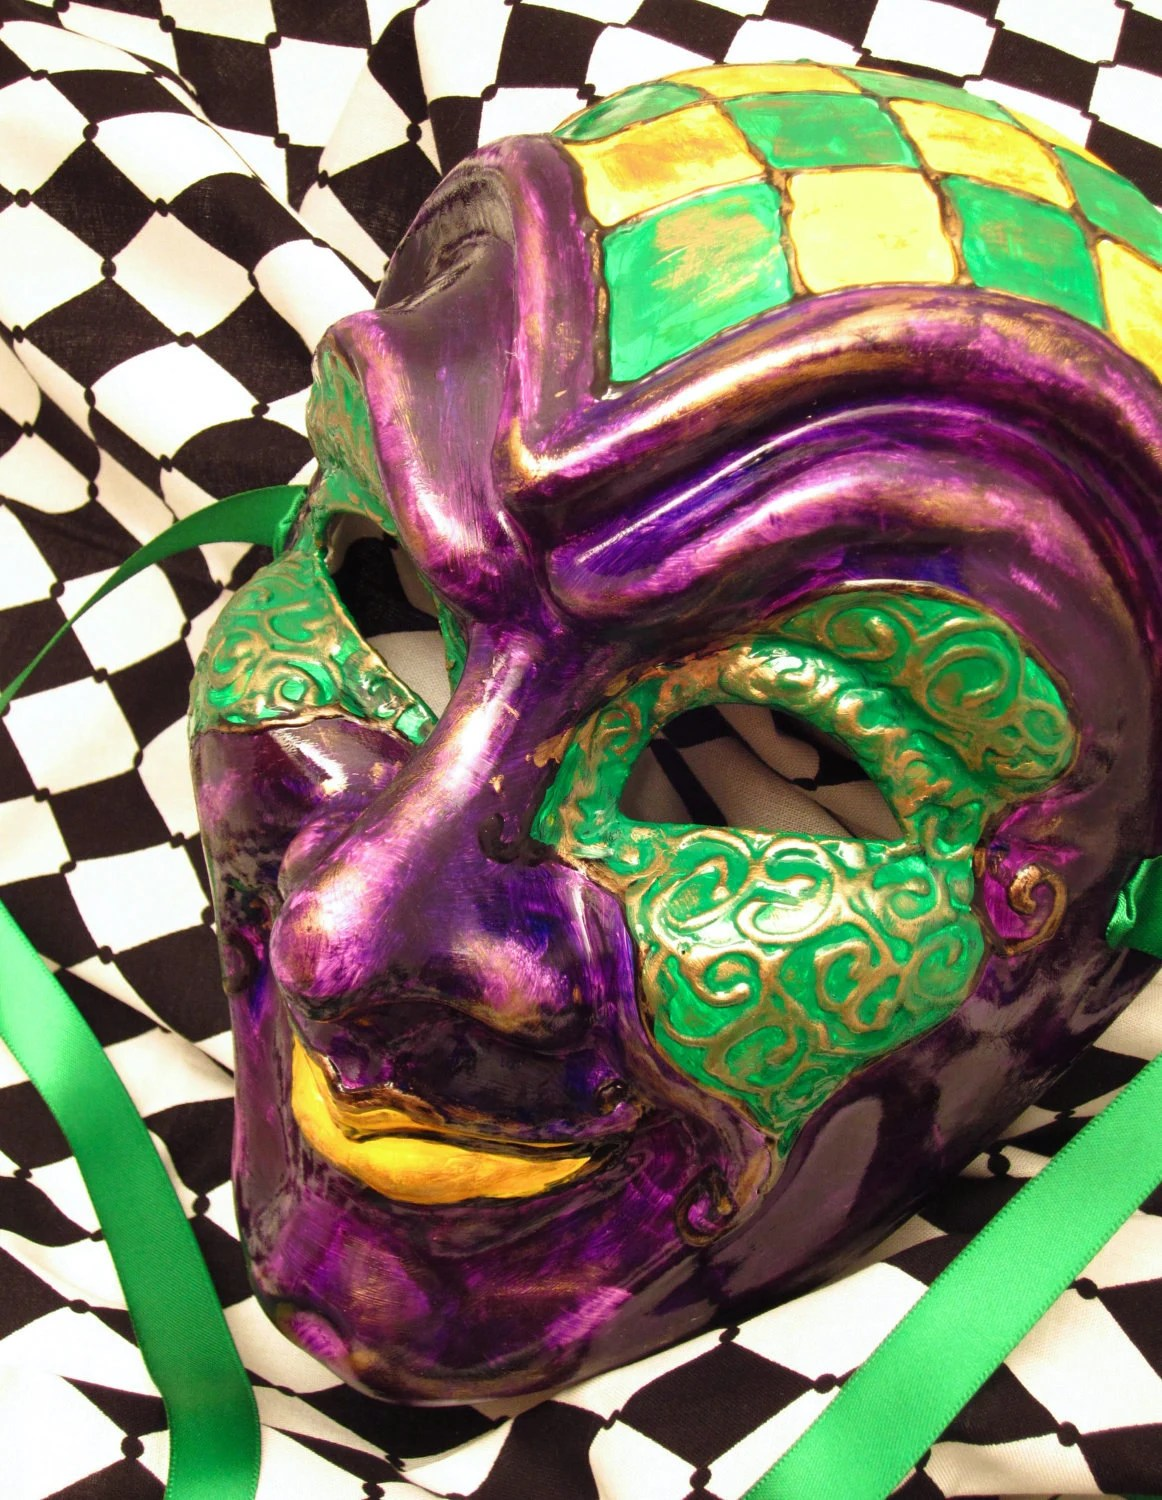 The Life Mask for Mardi Gras/Costume/Masquerade/Cosplay